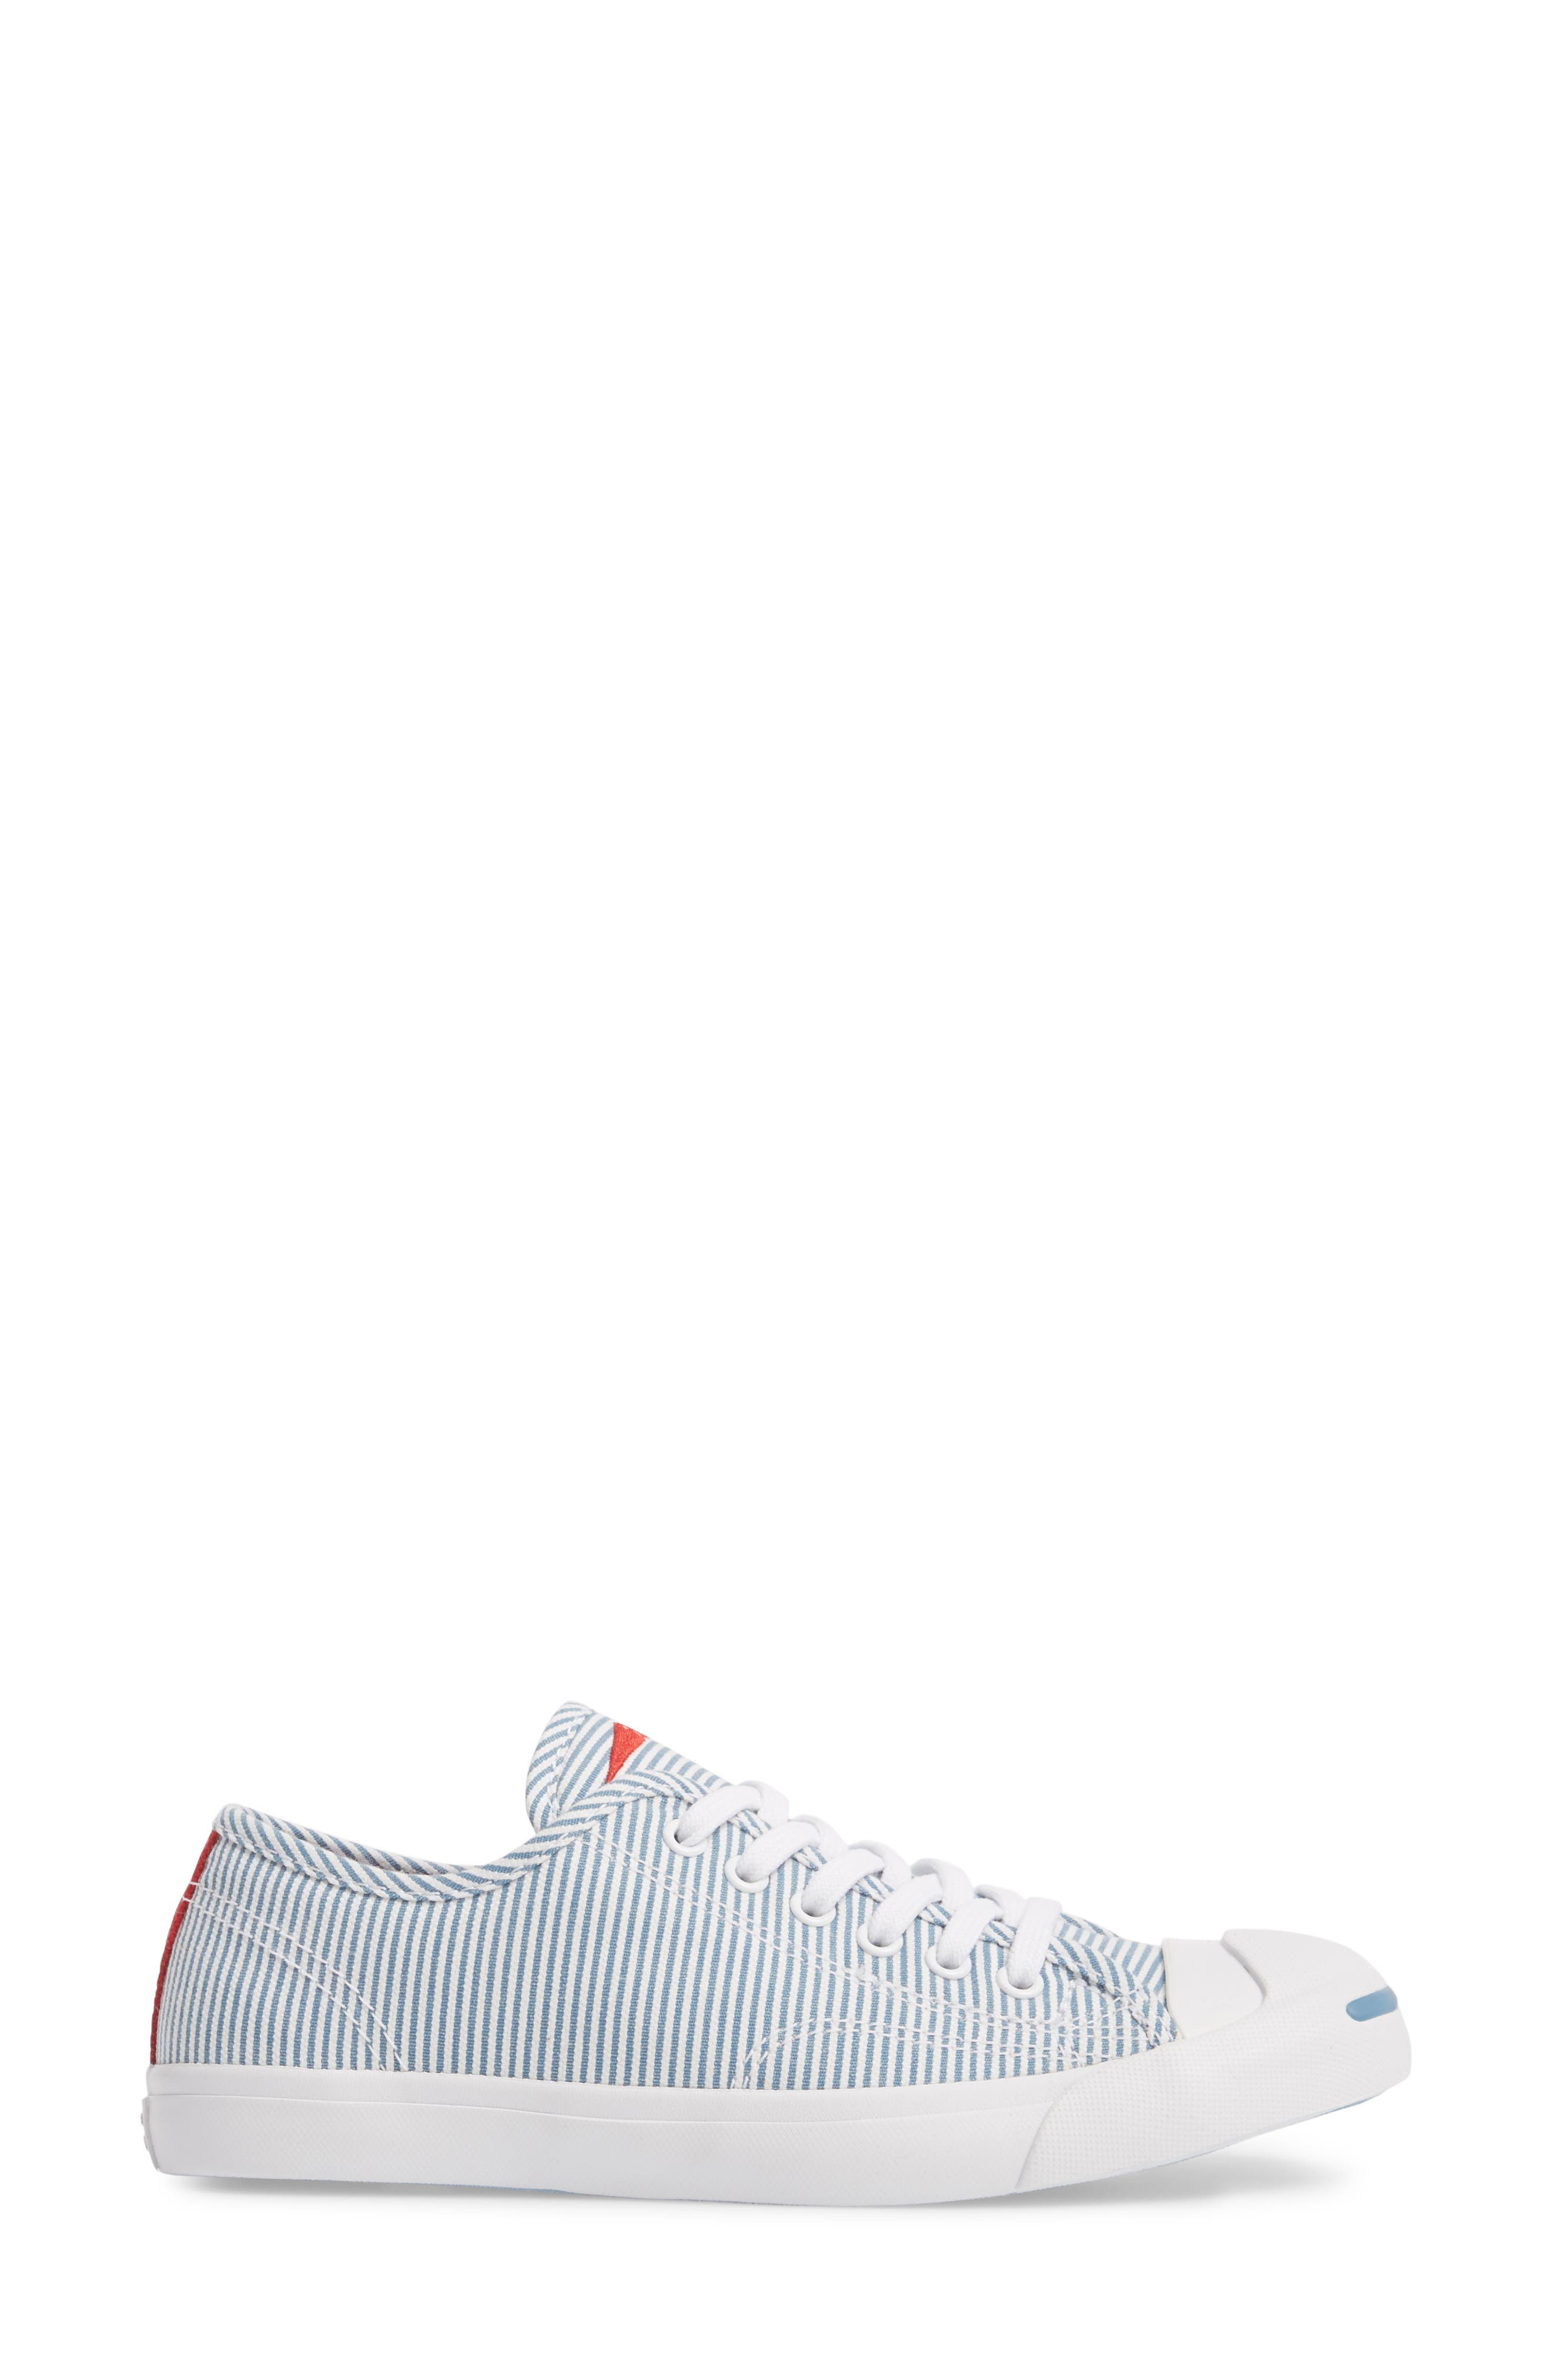 Jack Purcell Low Top Sneaker,                             Alternate thumbnail 2, color,                             Aegean Storm